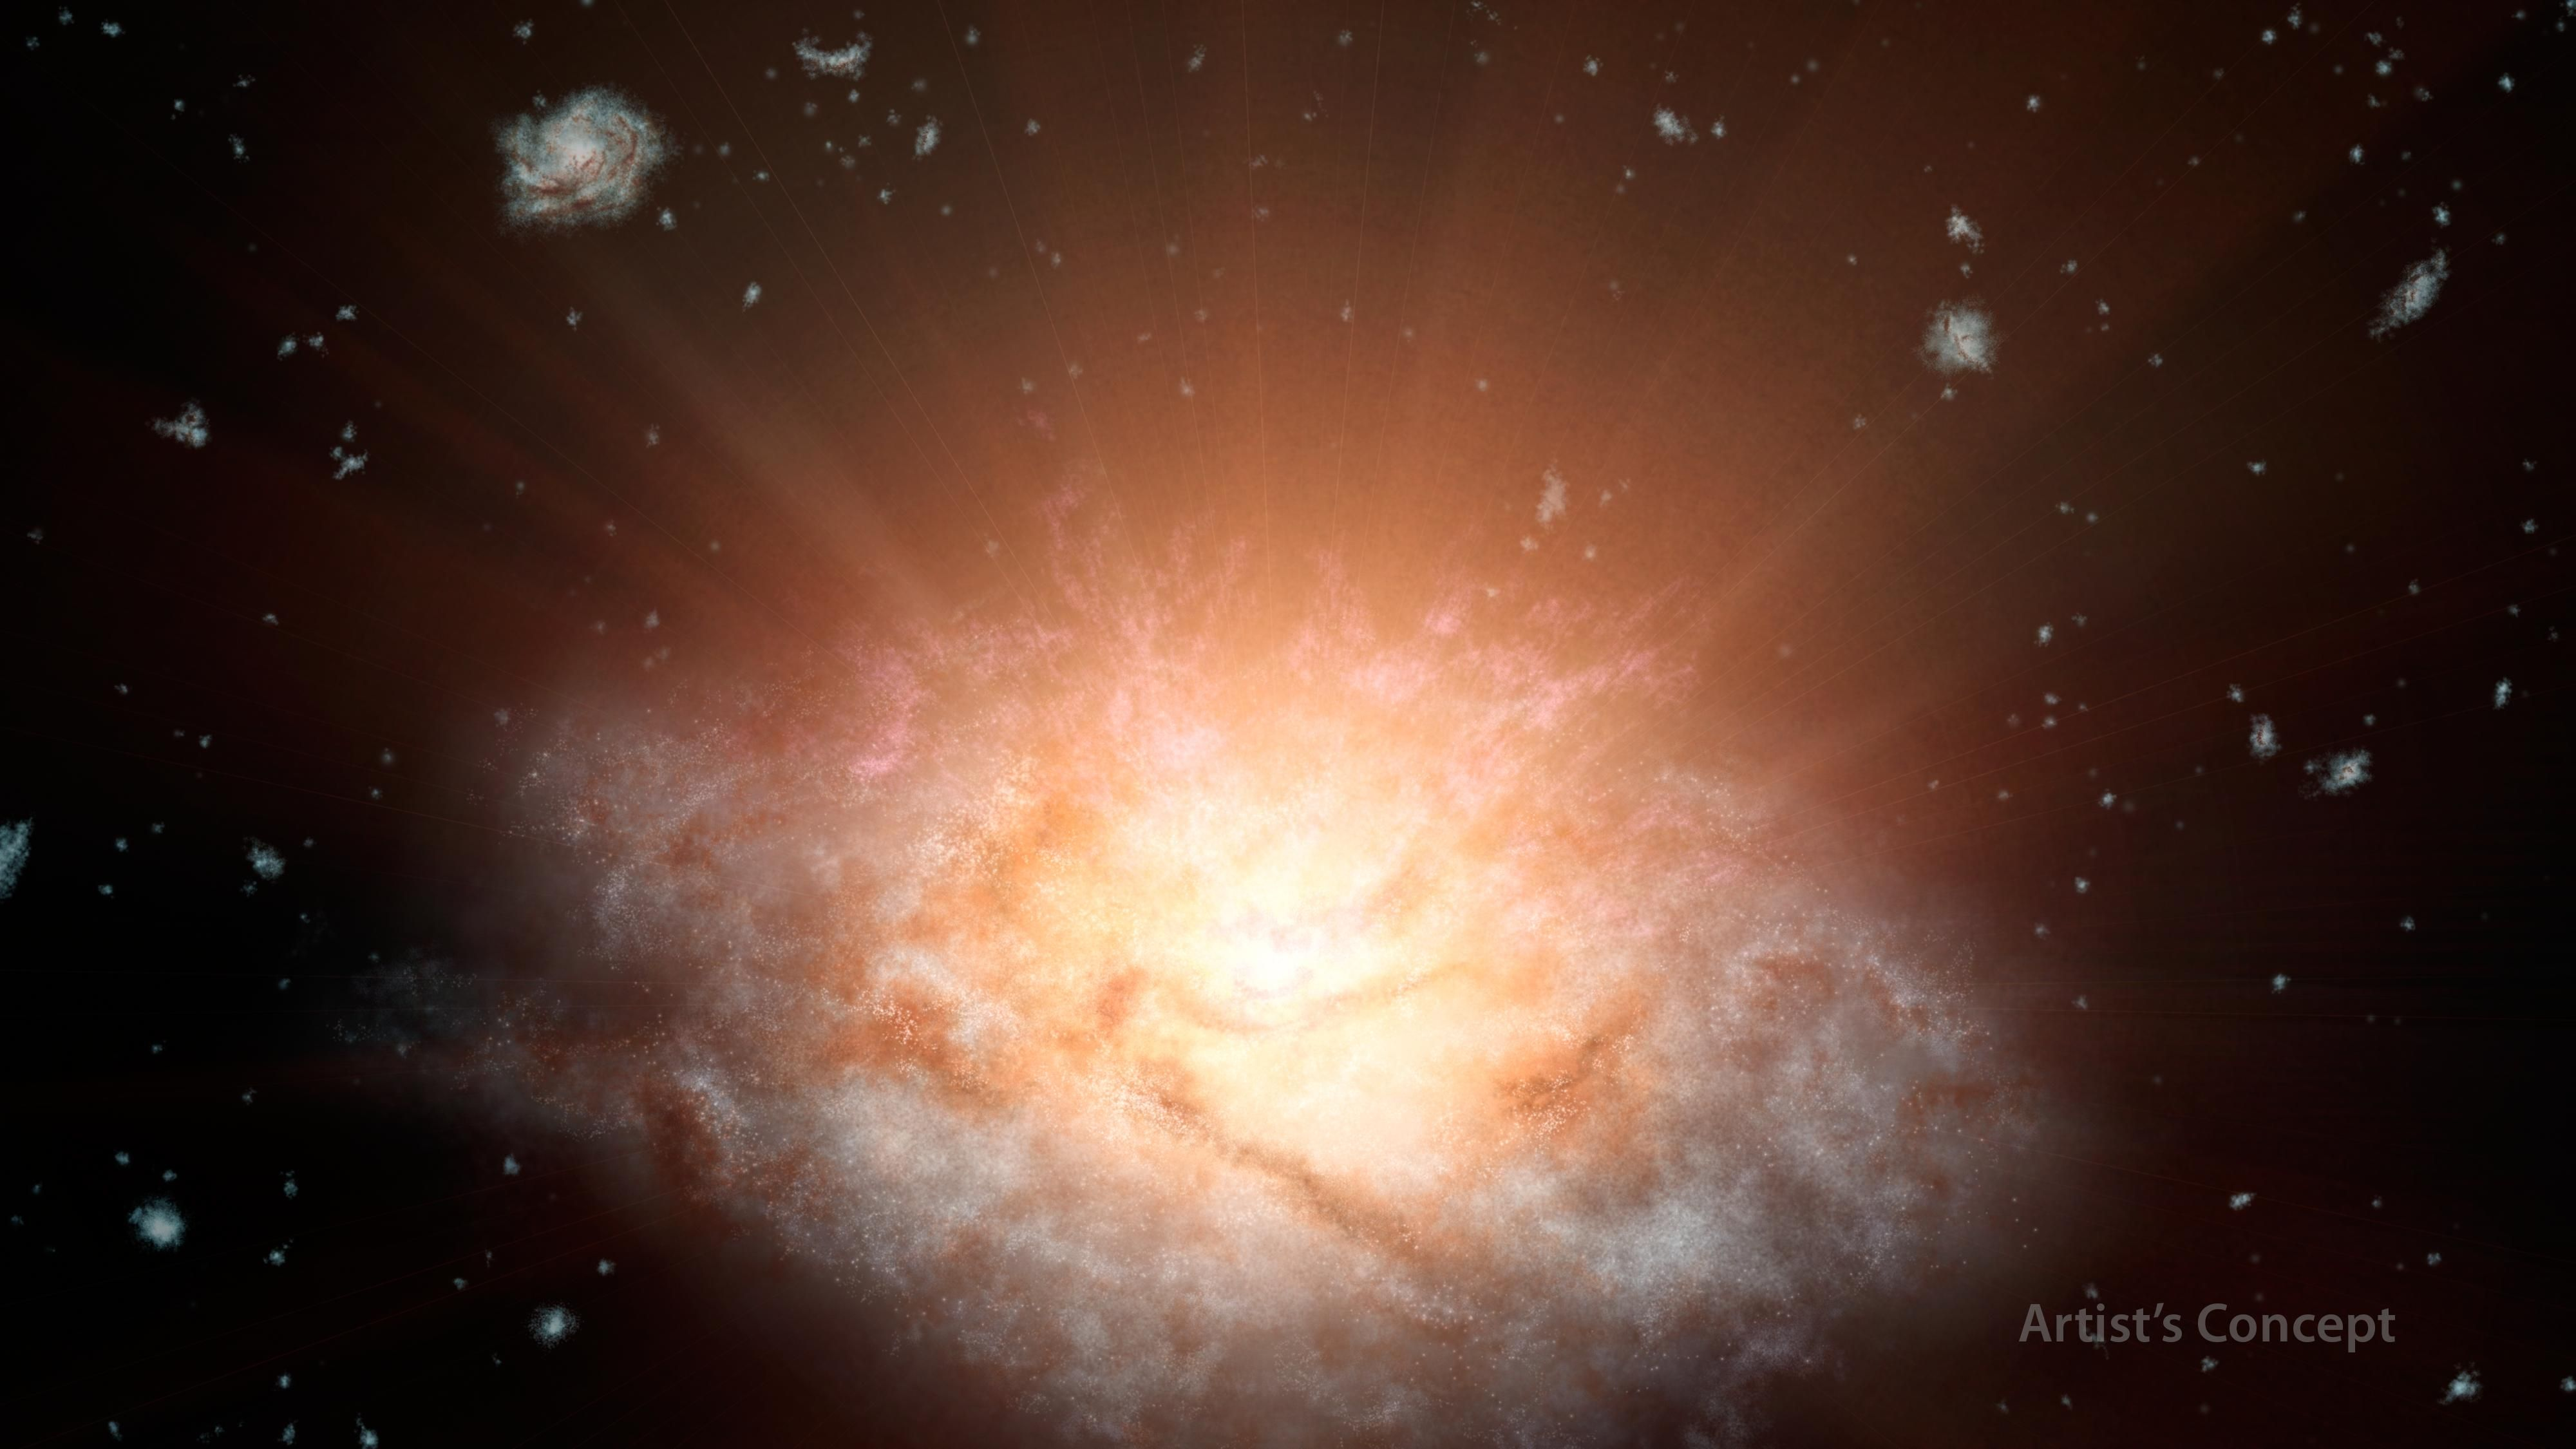 A newfound galaxy 12.5 billion light-years from Earth is the most luminous one known in the universe, blazing more brightly than 300 trillion suns. The engine behind the galaxy's brilliance may be a supermassive black hole, researchers said.